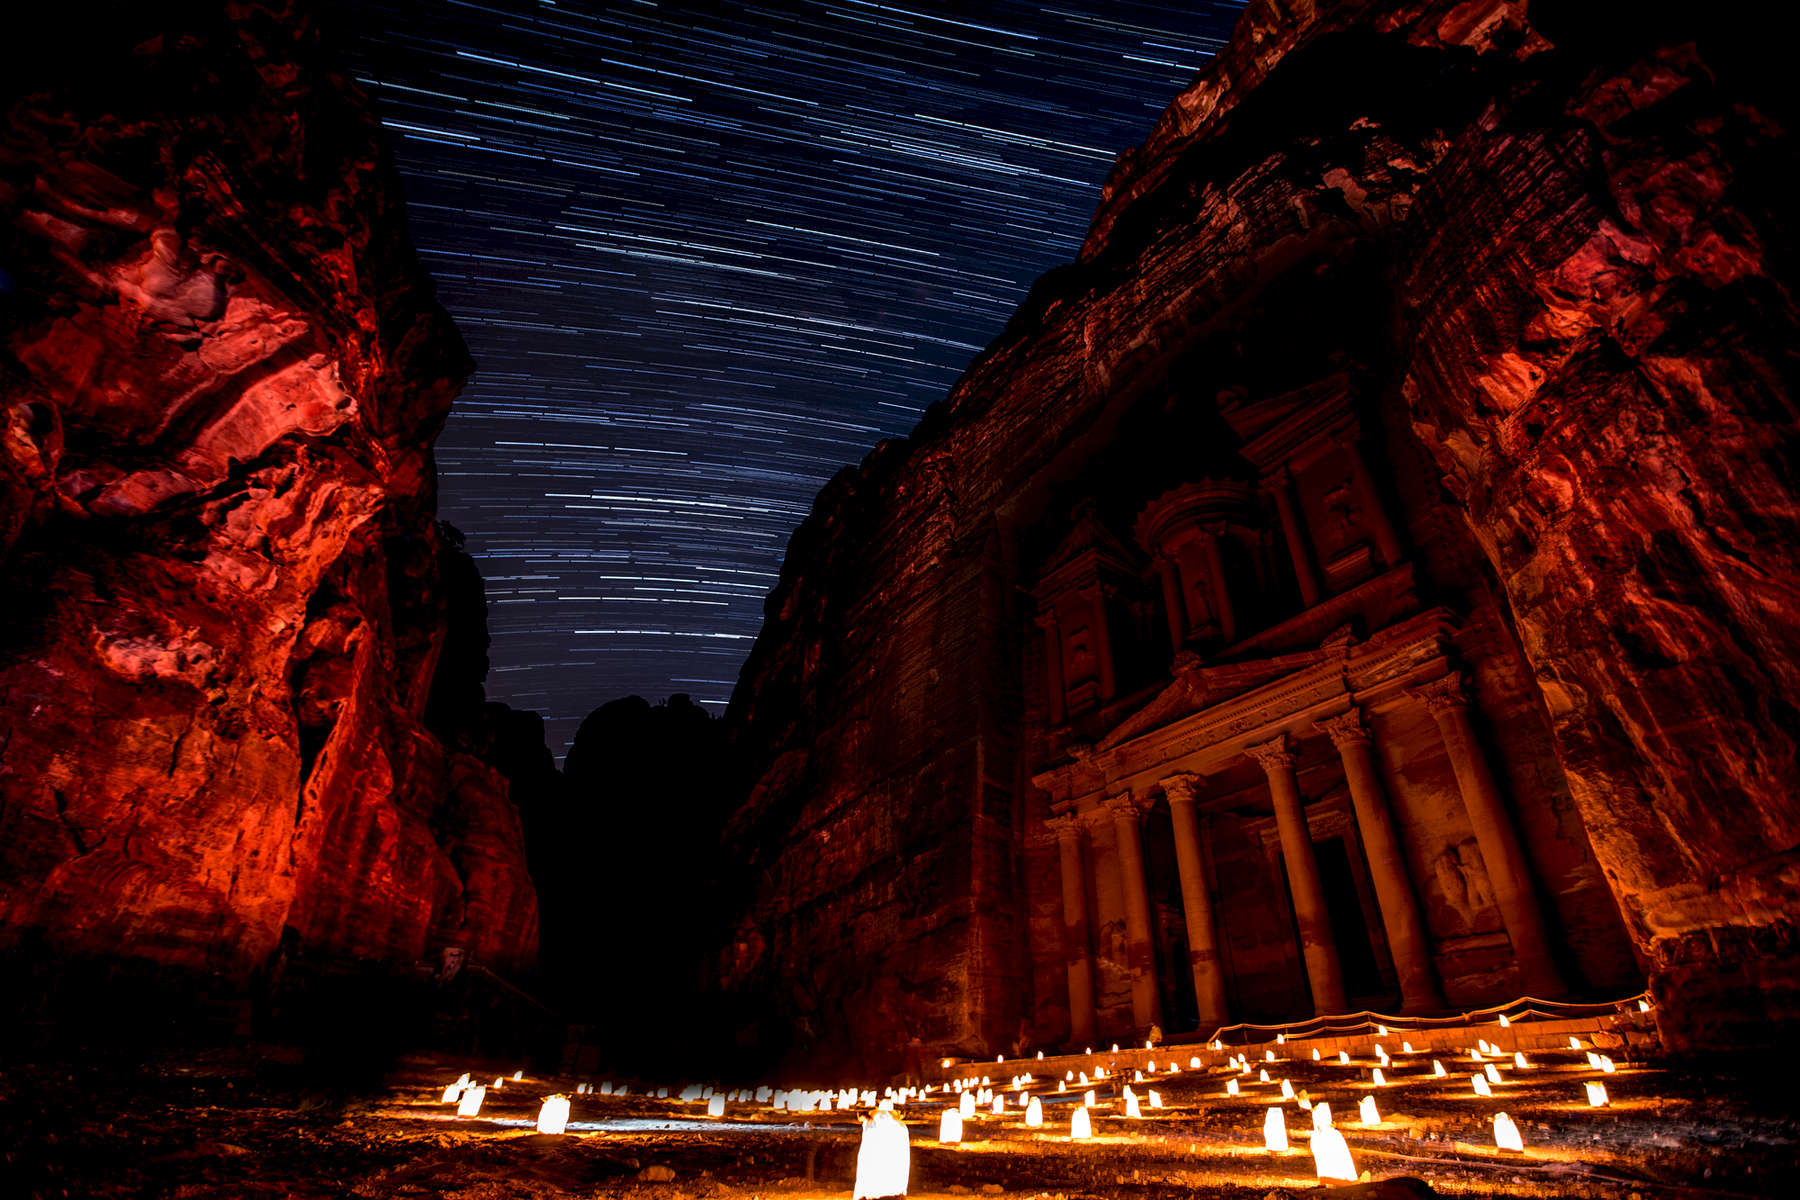 Al Khazneh, or the Treasury, was carved out of a sandstone rock face. It is one of the most elaborate temples in Petra, and is otherworldly at night.